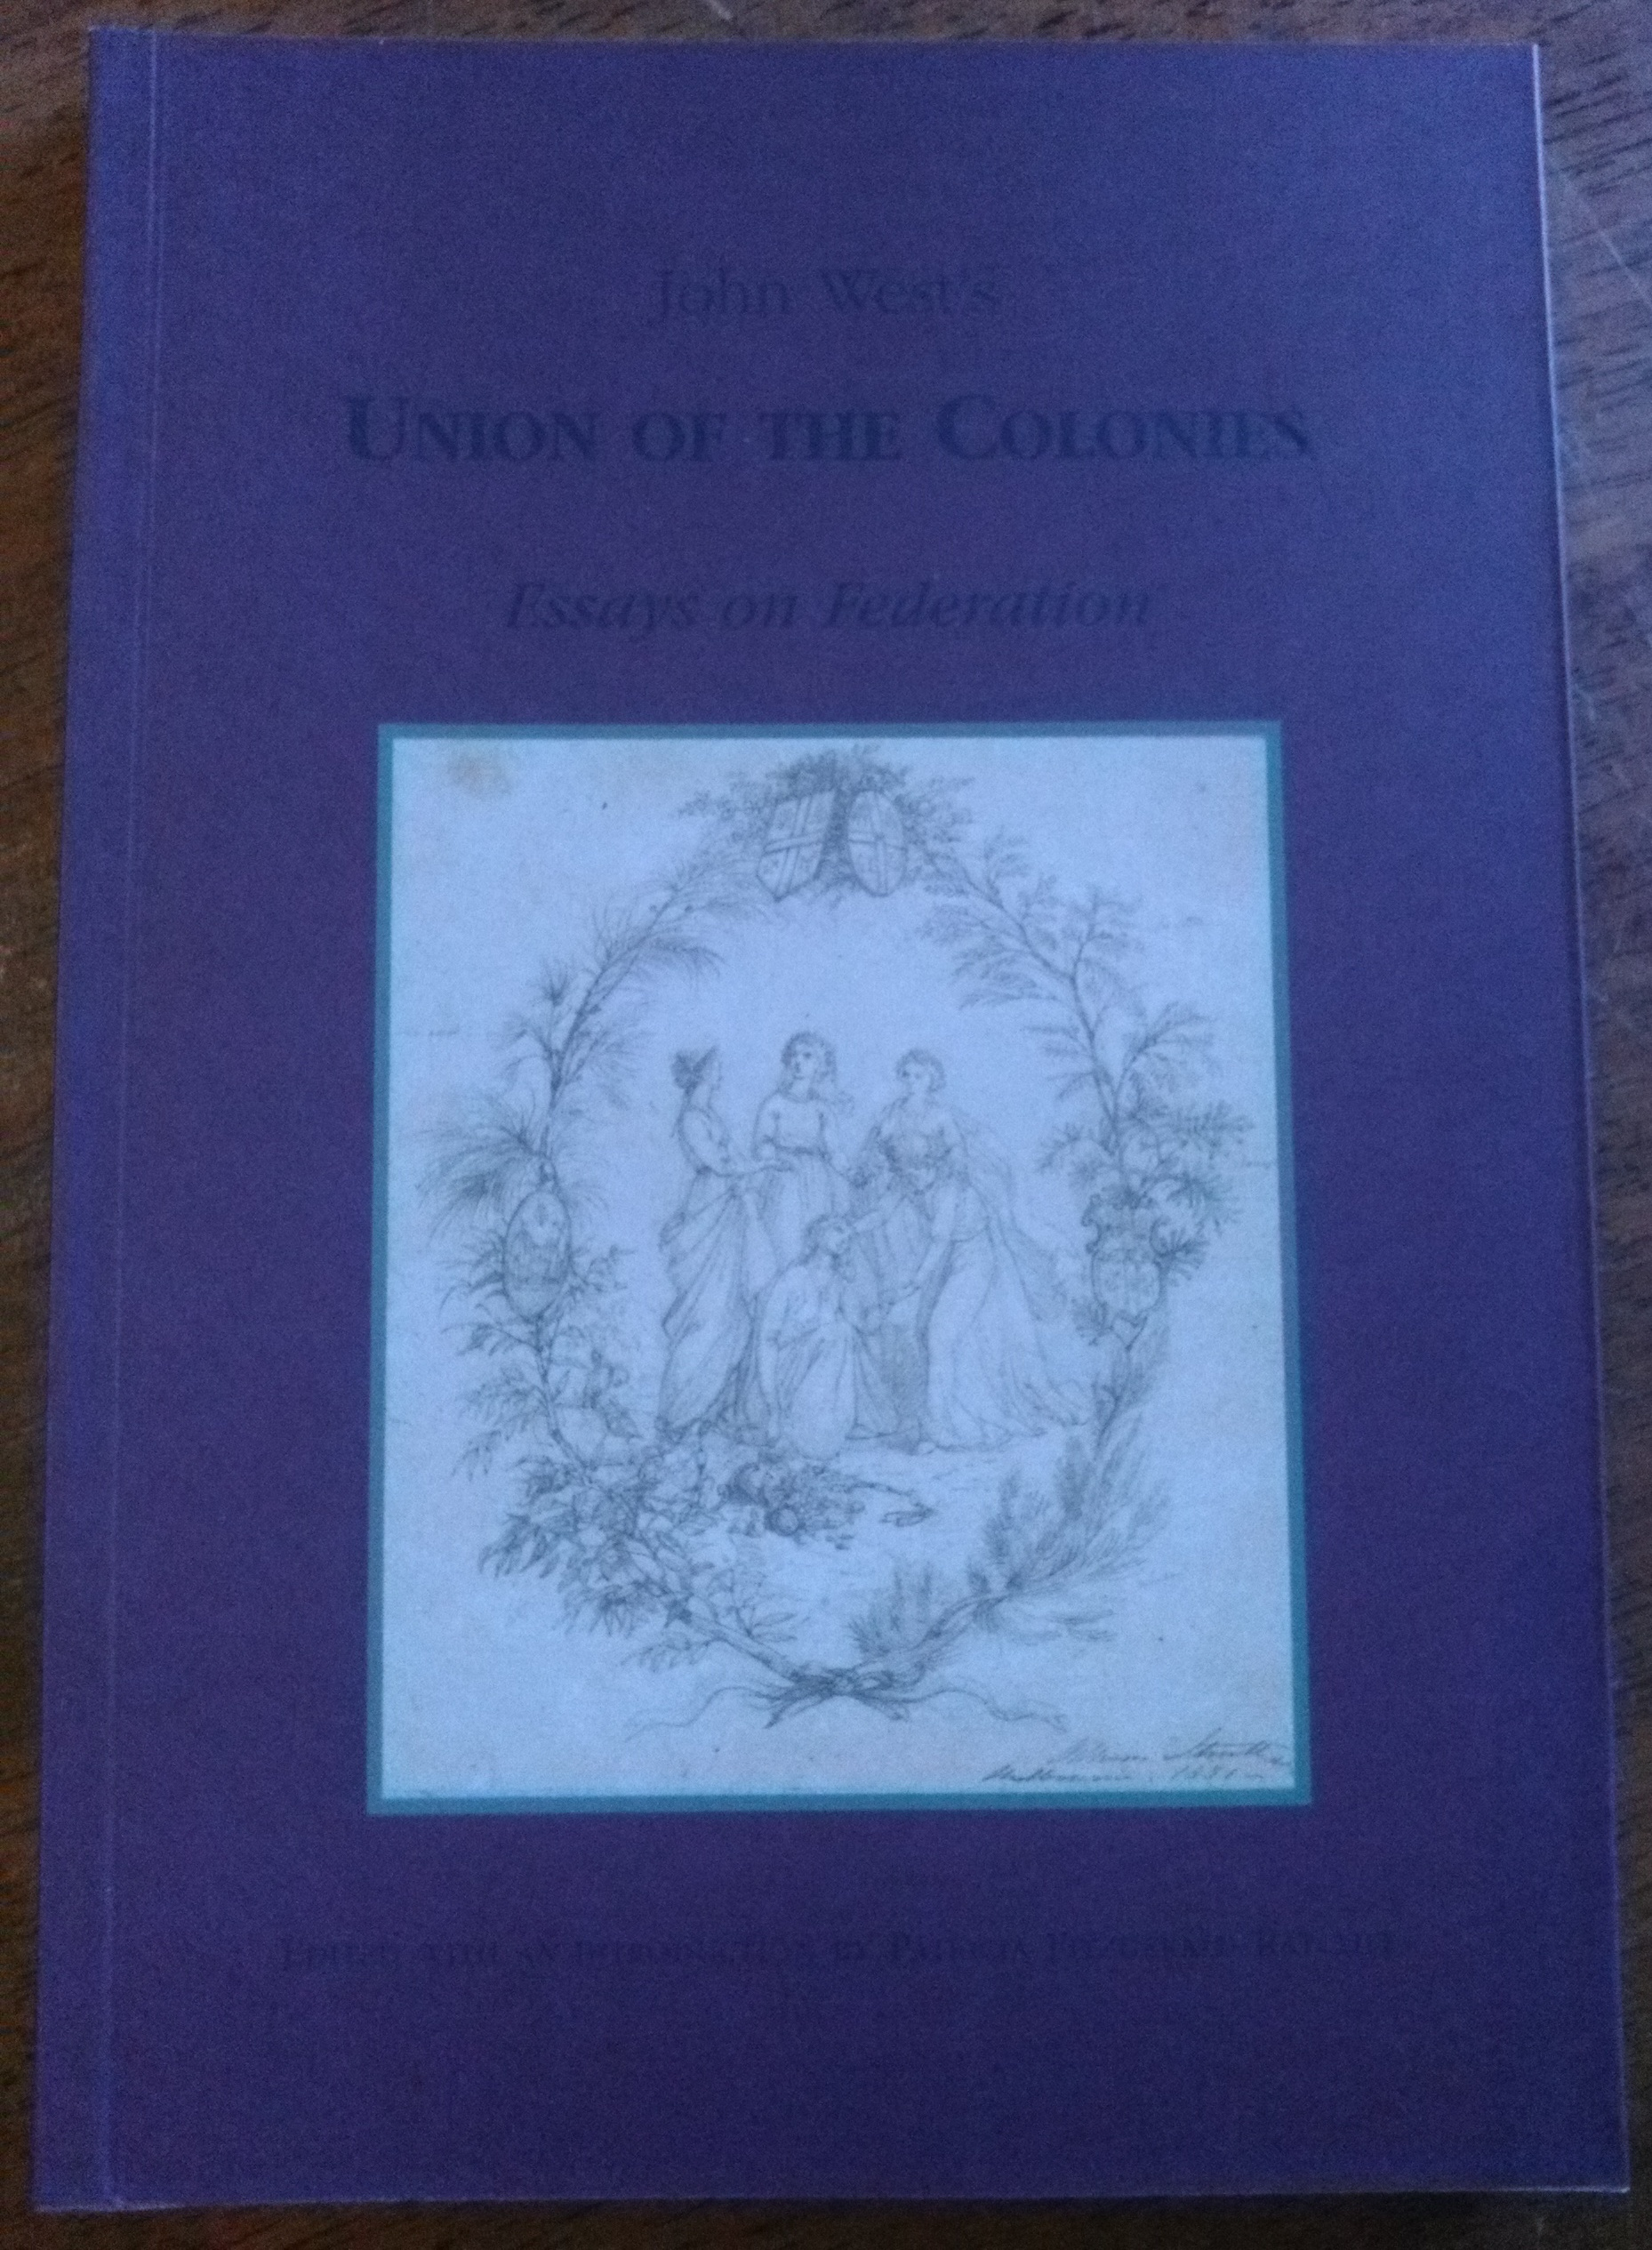 John West's Union of the Colonies - essays on Federation